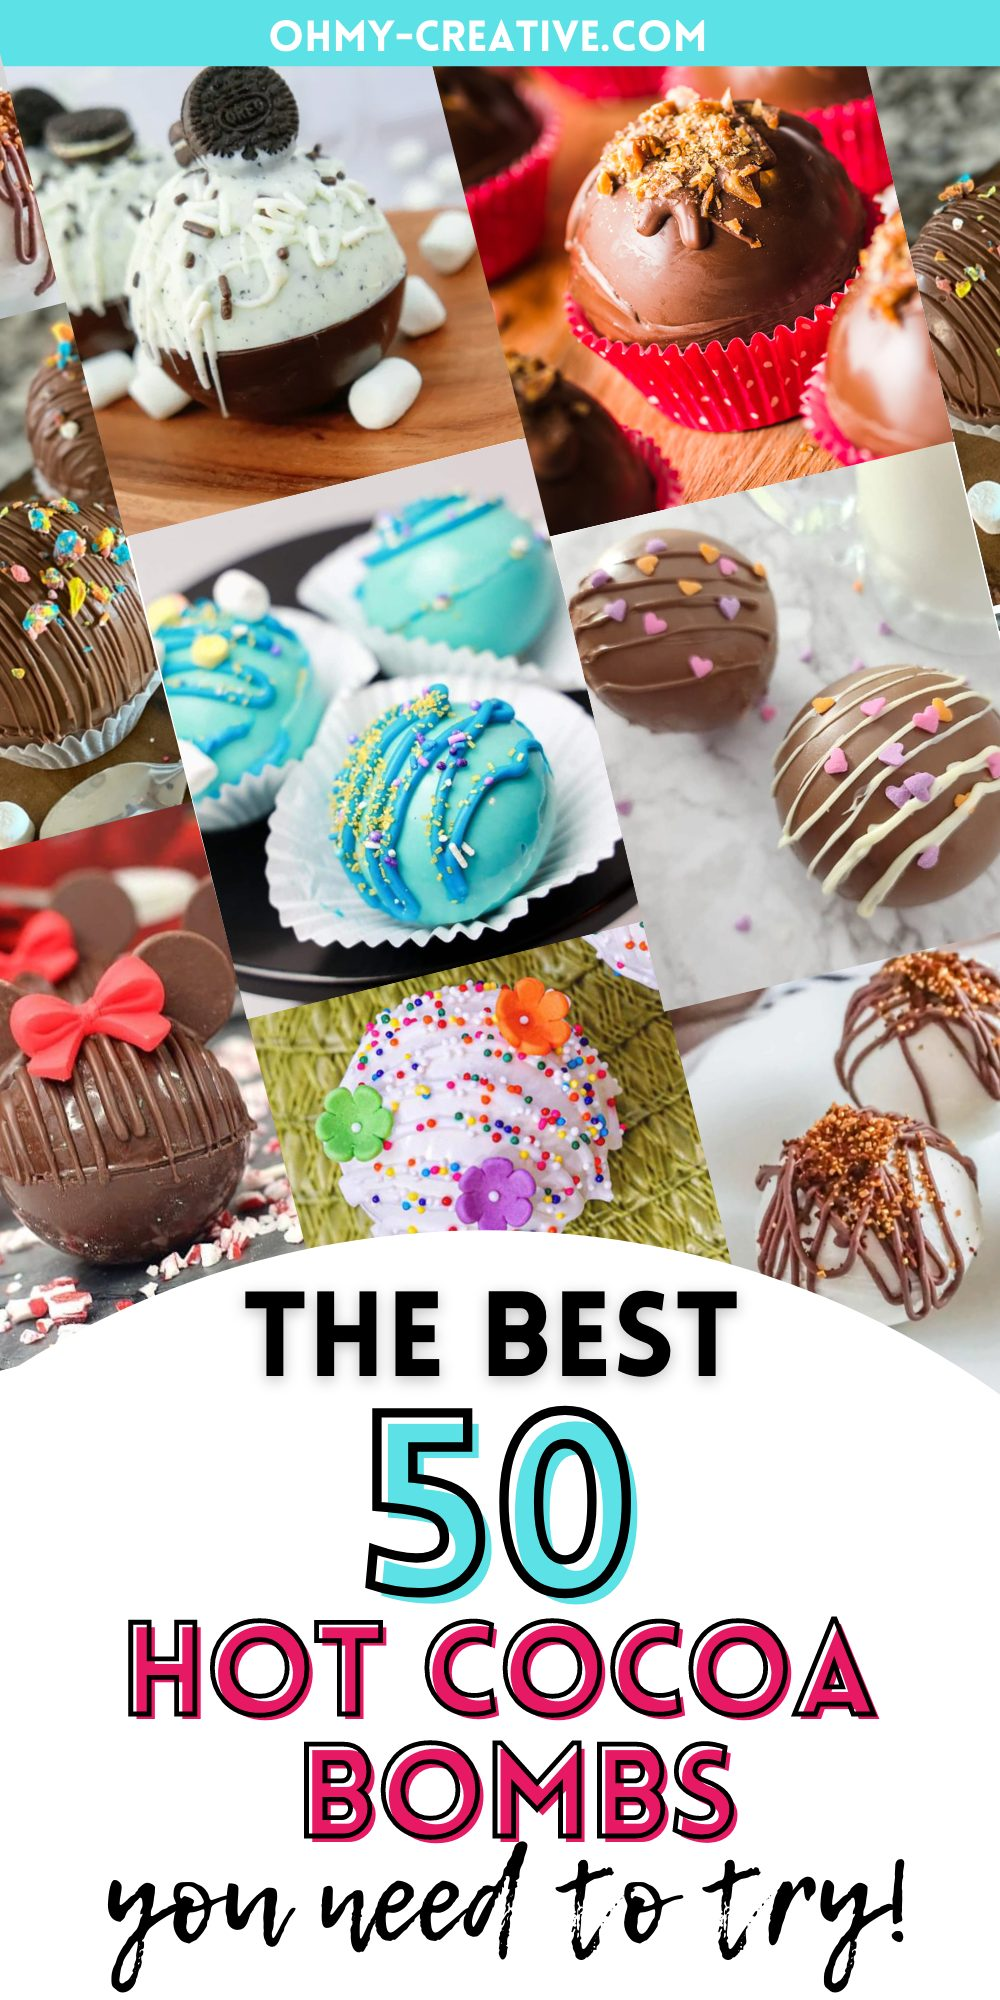 The Best 50 Hot Cocoa Bombs Recipes